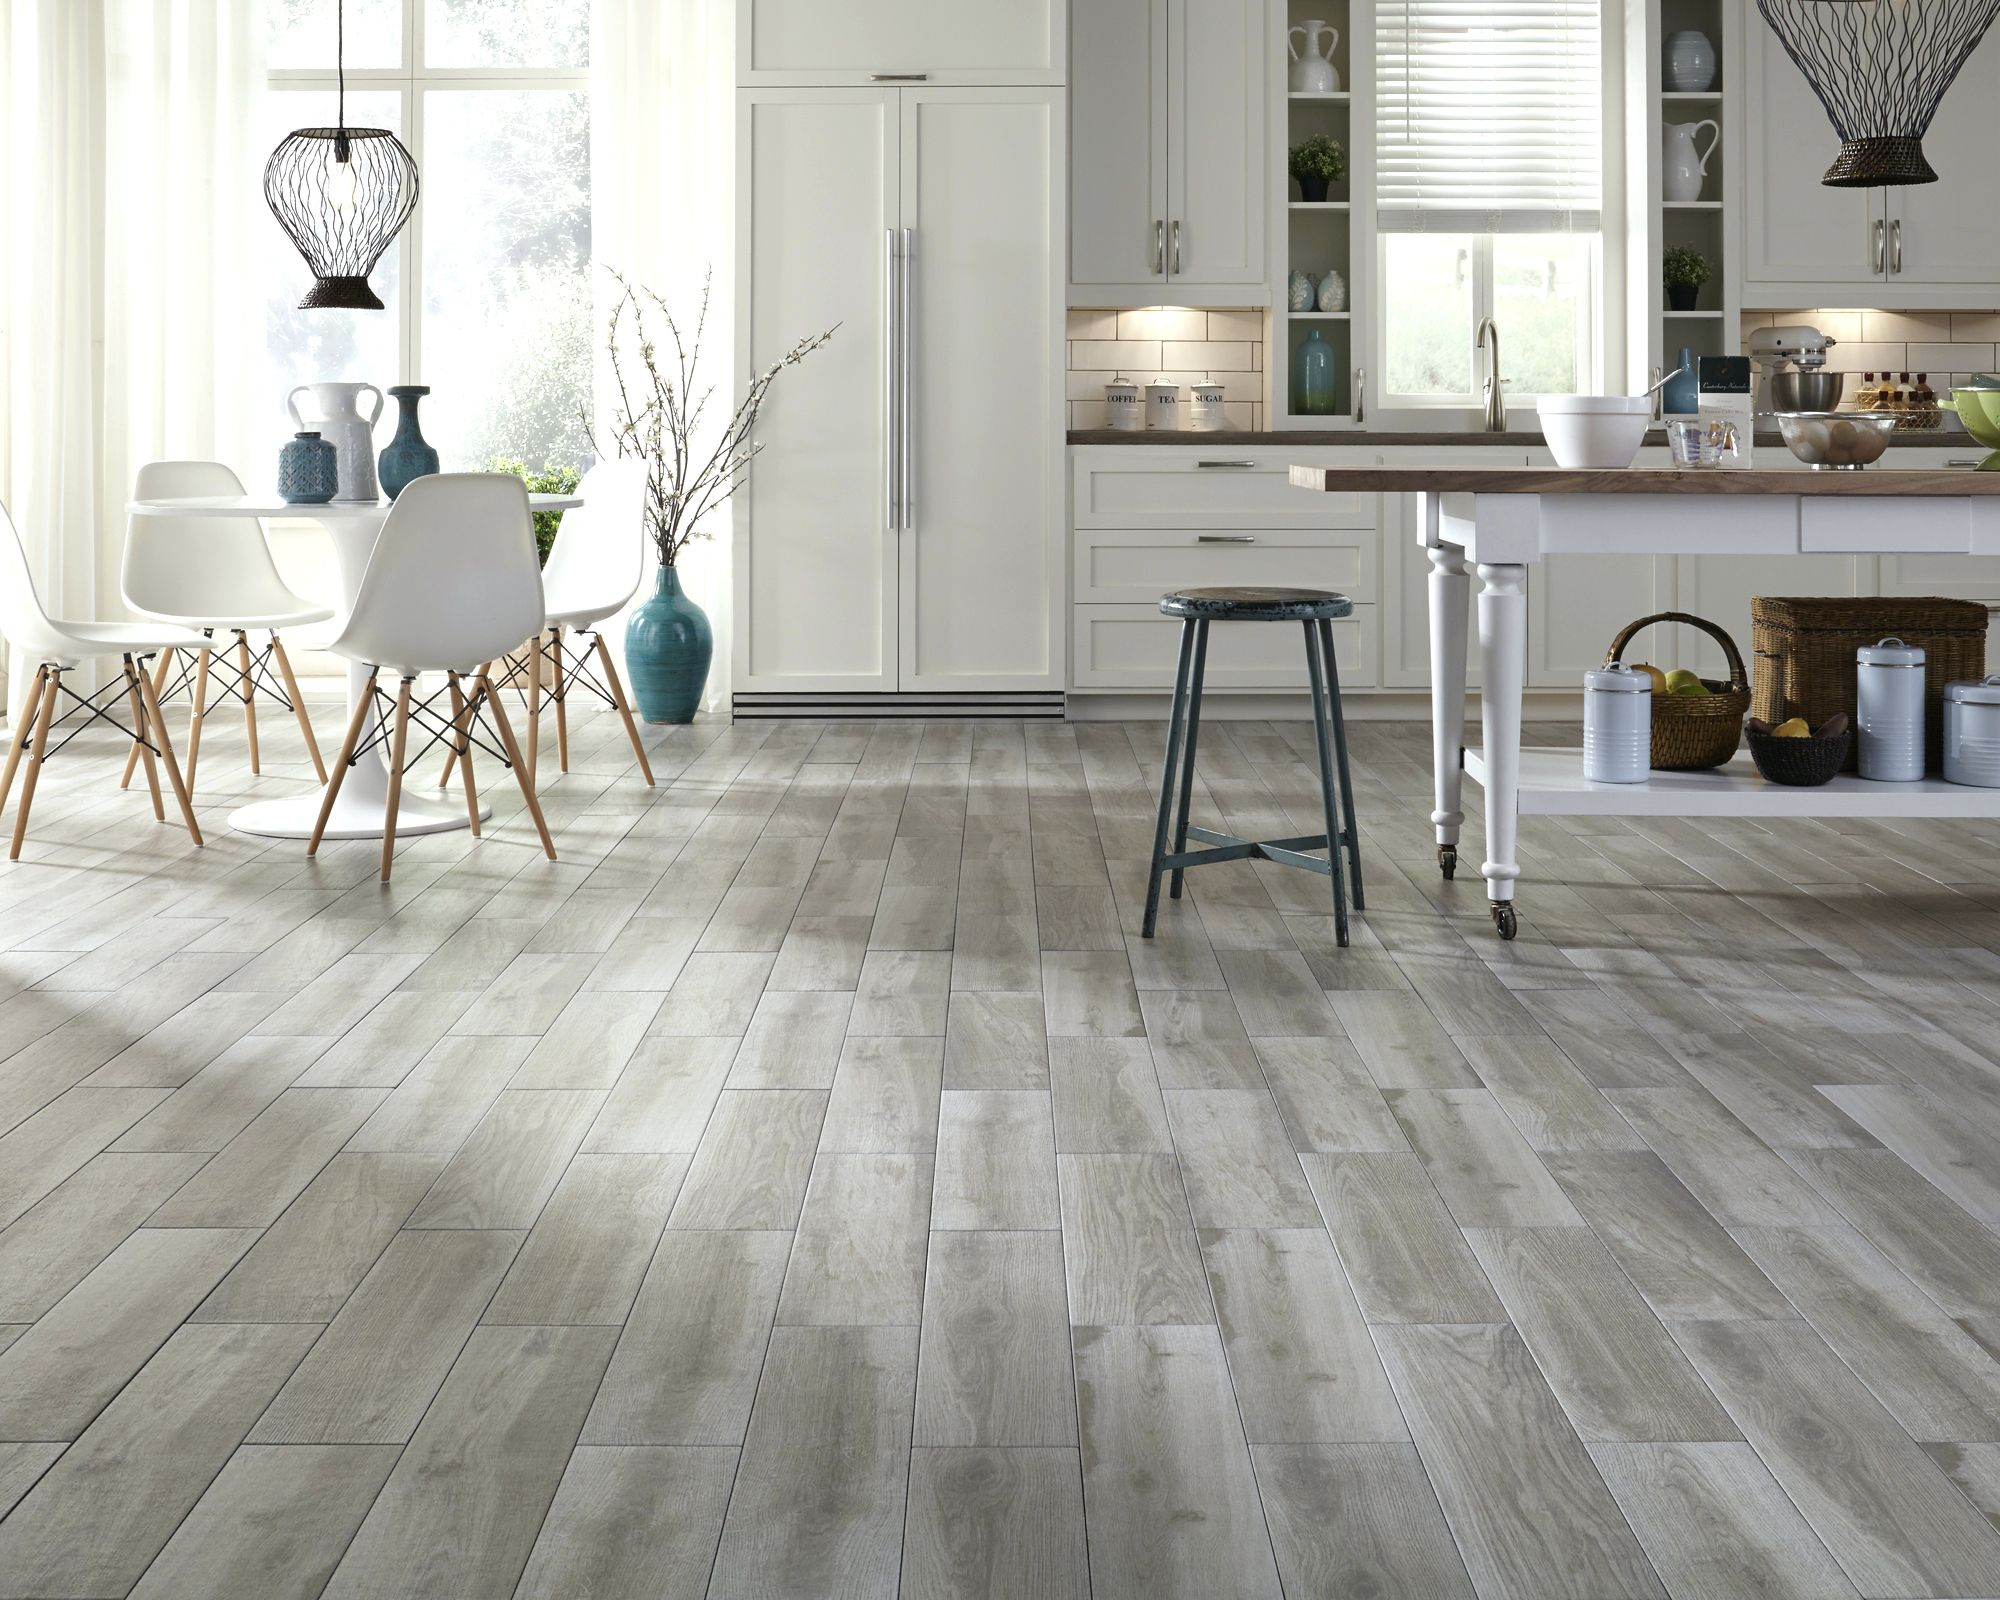 Gray Wood Tile Flooring